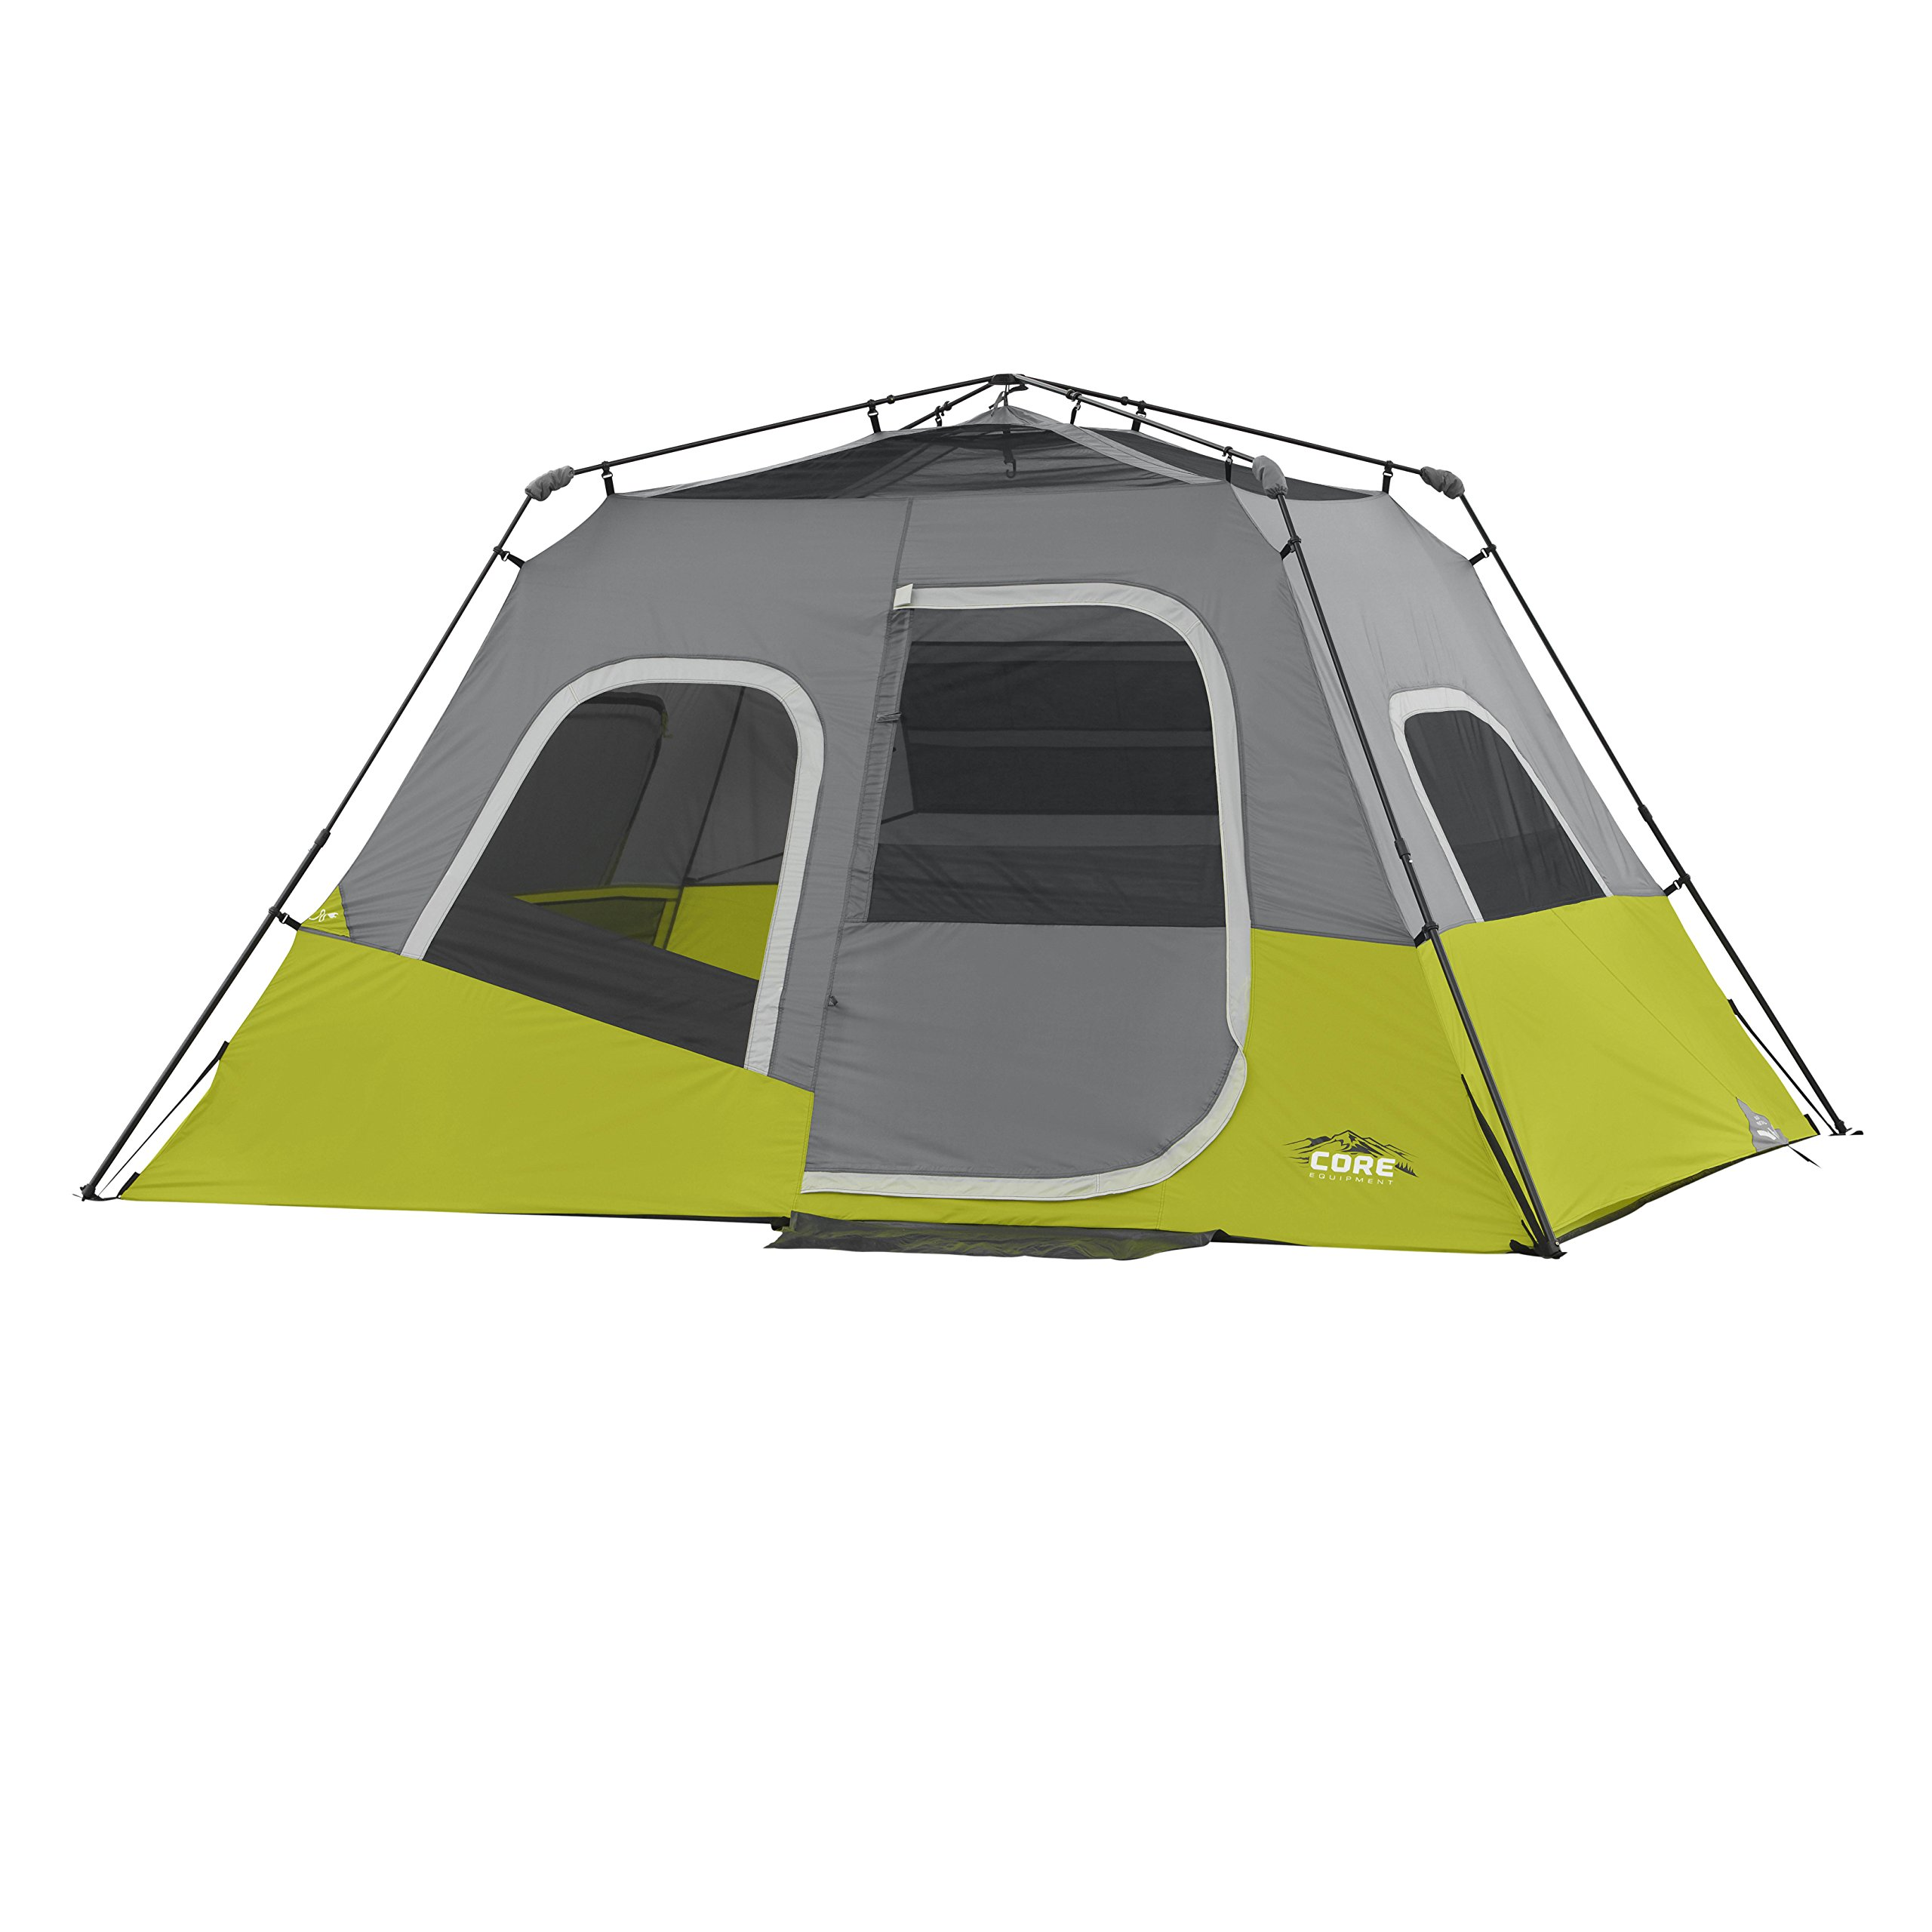 CORE Instant Cabin Tent, 6 Person, 11' x 9' by CORE (Image #1)